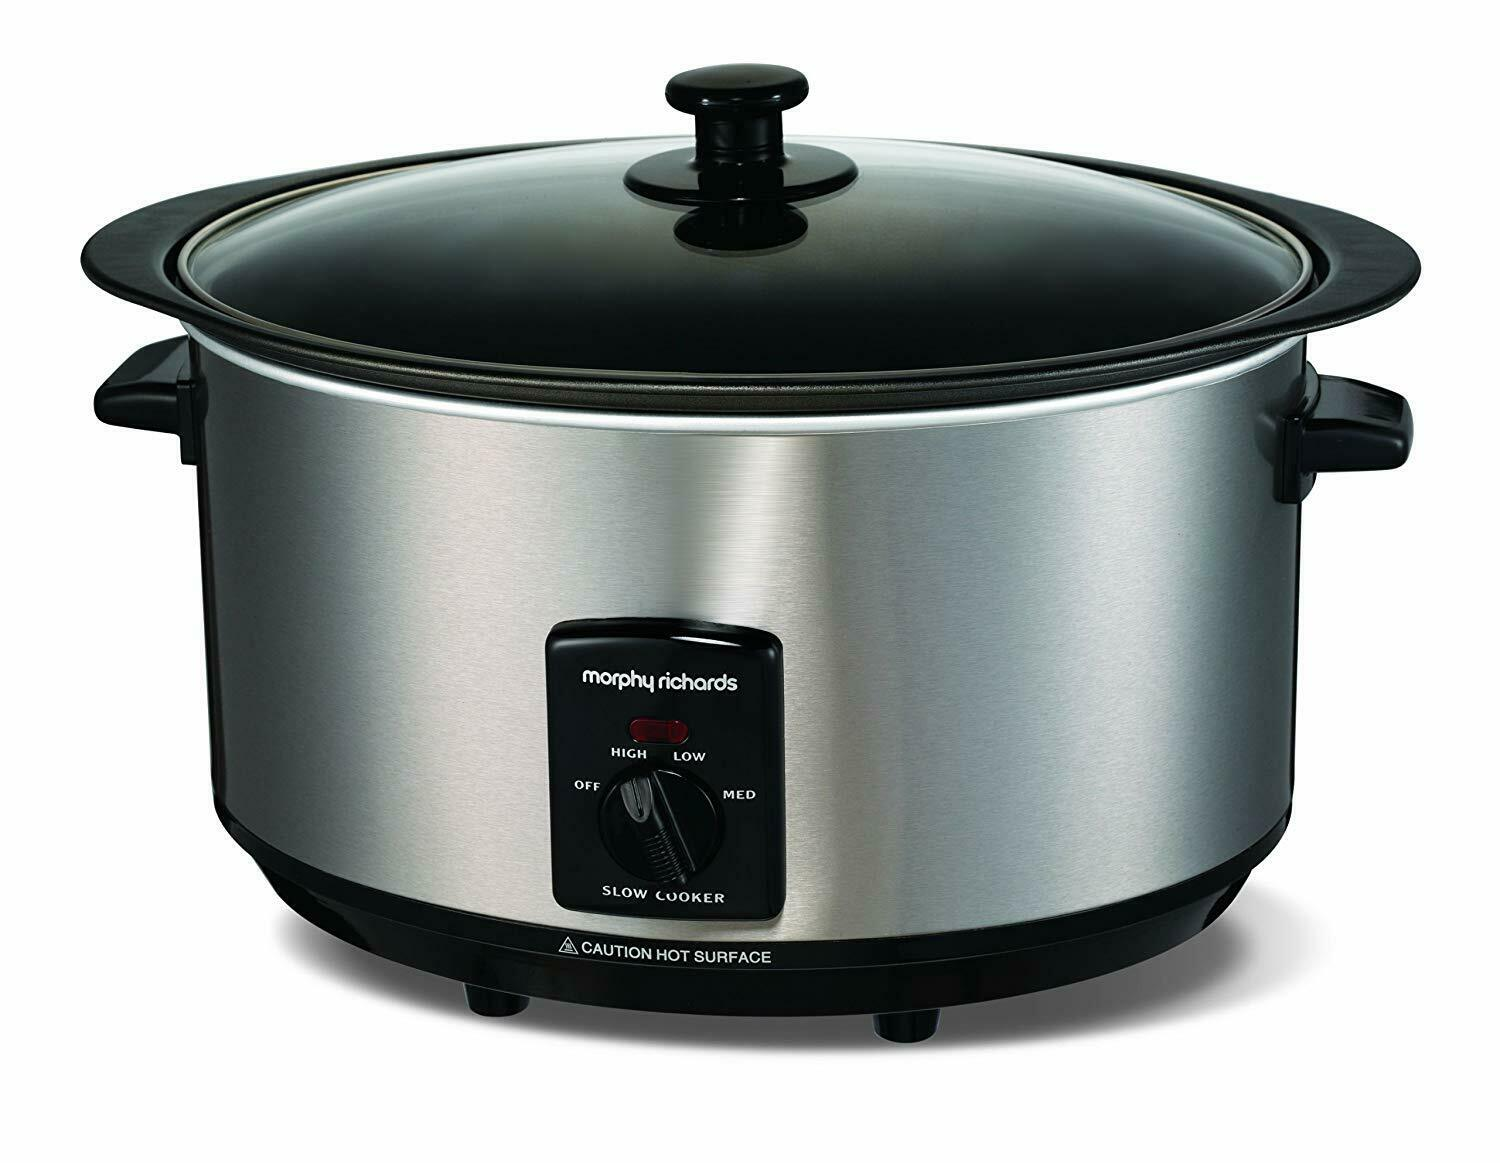 Morphy Richards 6.5 Litre Sear and Stew Oval Large Brushed Steel Slow Cooker